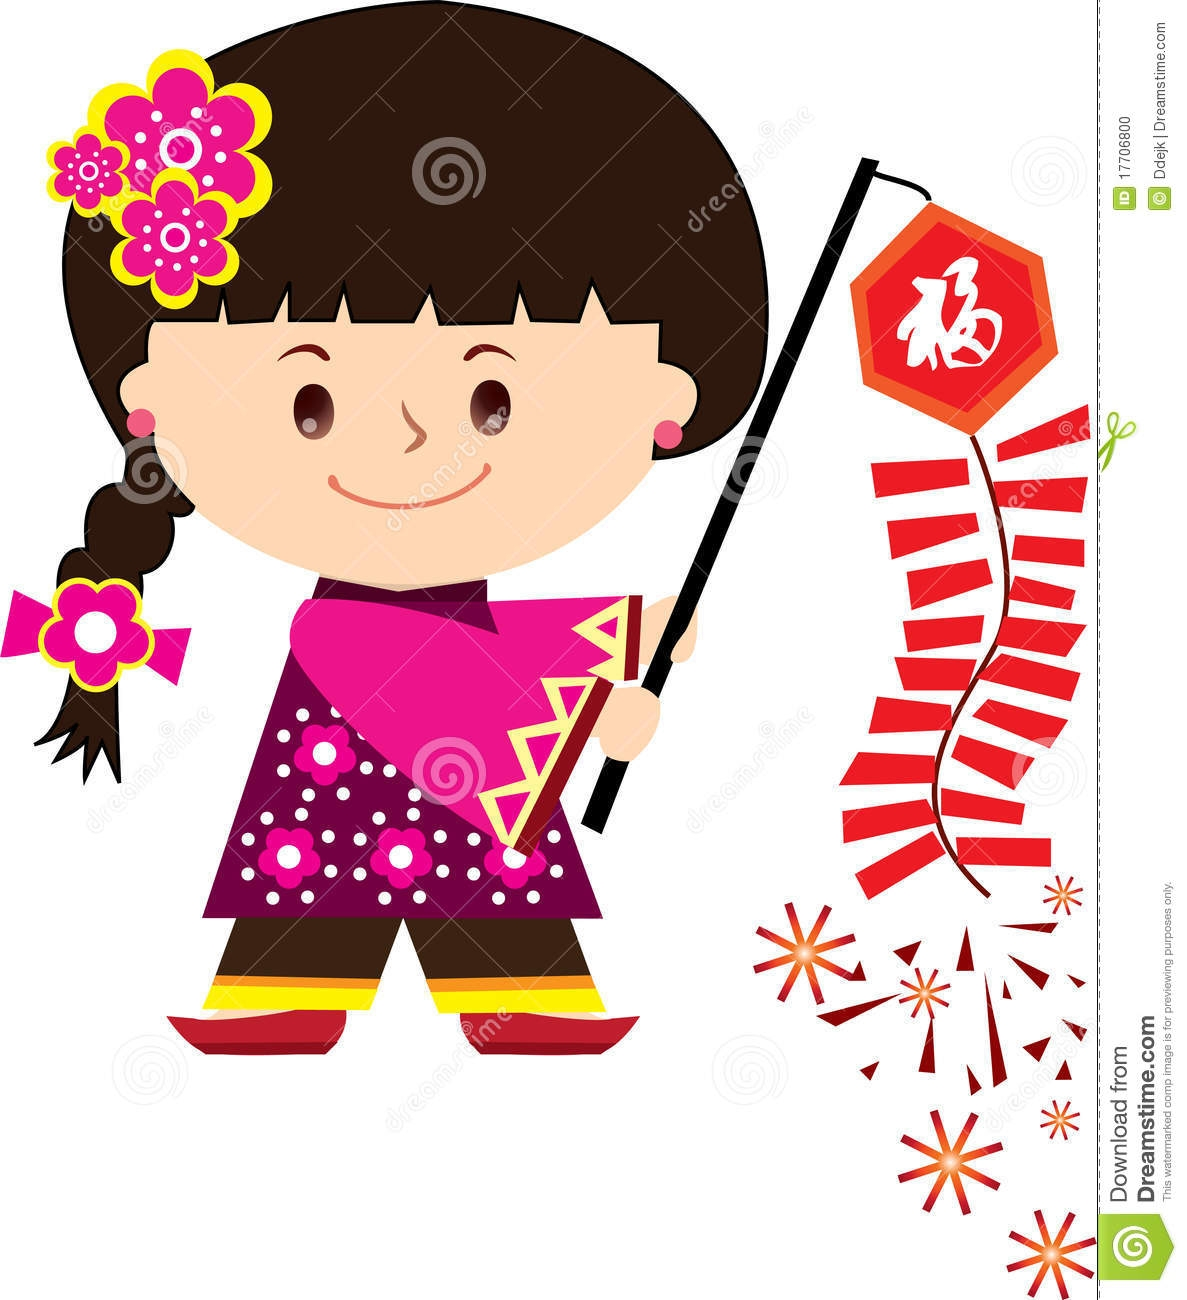 Firecrackers clipground fireworks. China clipart chinese new year